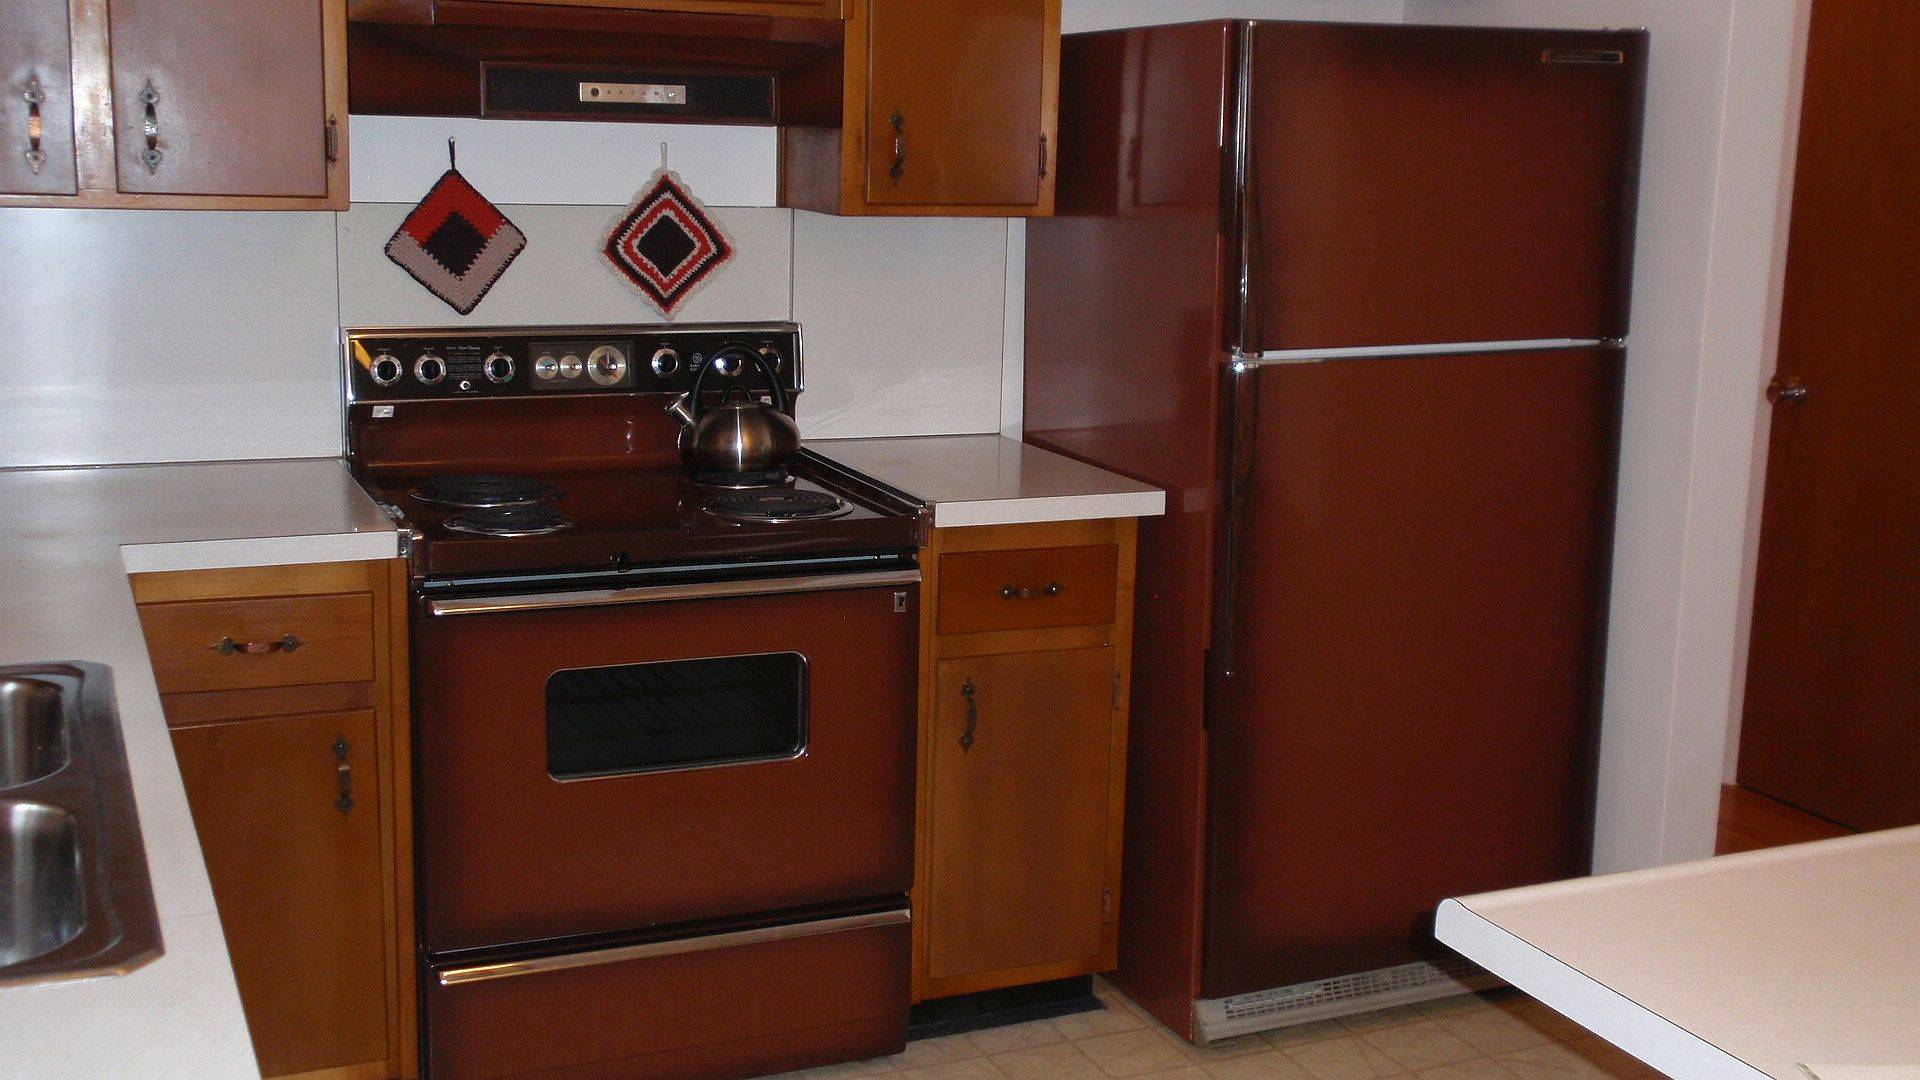 Time Warp House from the 1960's. Great for my Buyers!